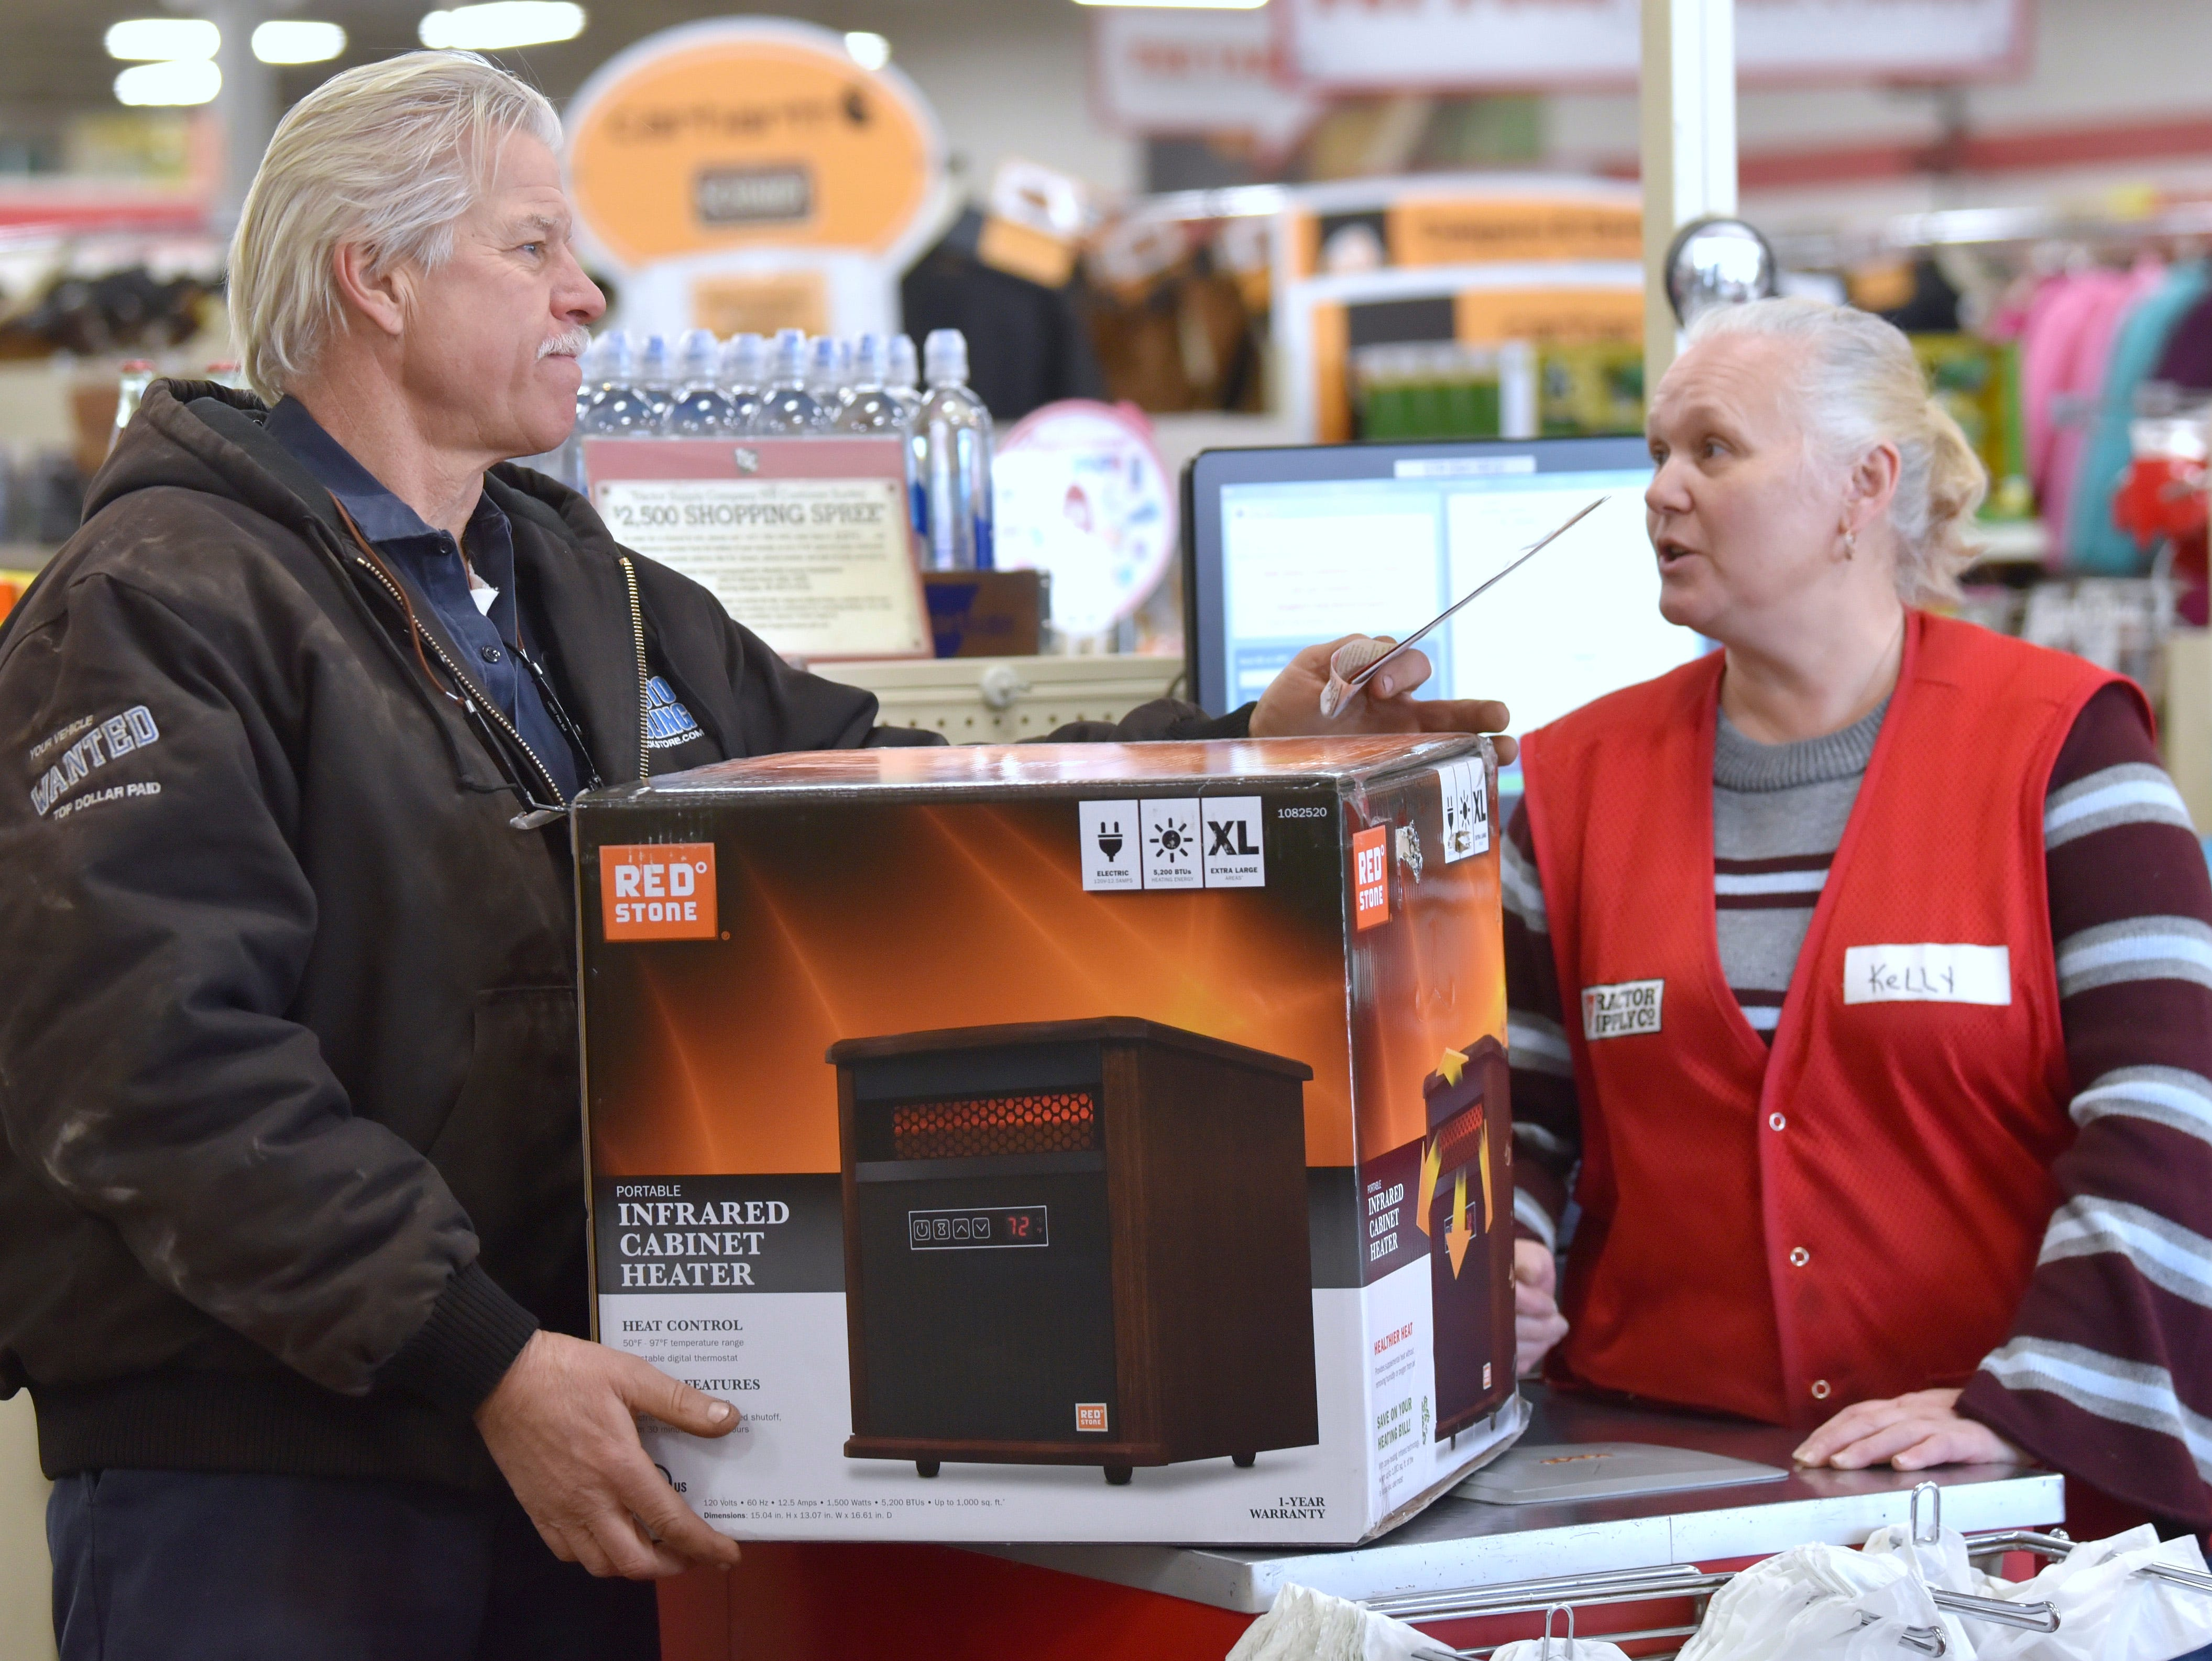 Lenox Township's Kustom Truck and Trailer owner Michael Kotulski, of Algonac, buys an XL infrared electric heater from New Haven's Tractor Supply Co. cashier Kelly Haggard, of Marine City, Thursday morning, January 31, 2019. One of Kotulski's hot-water boiler pumps broke at home, so he needs to heat the area while the unit gets repaired.